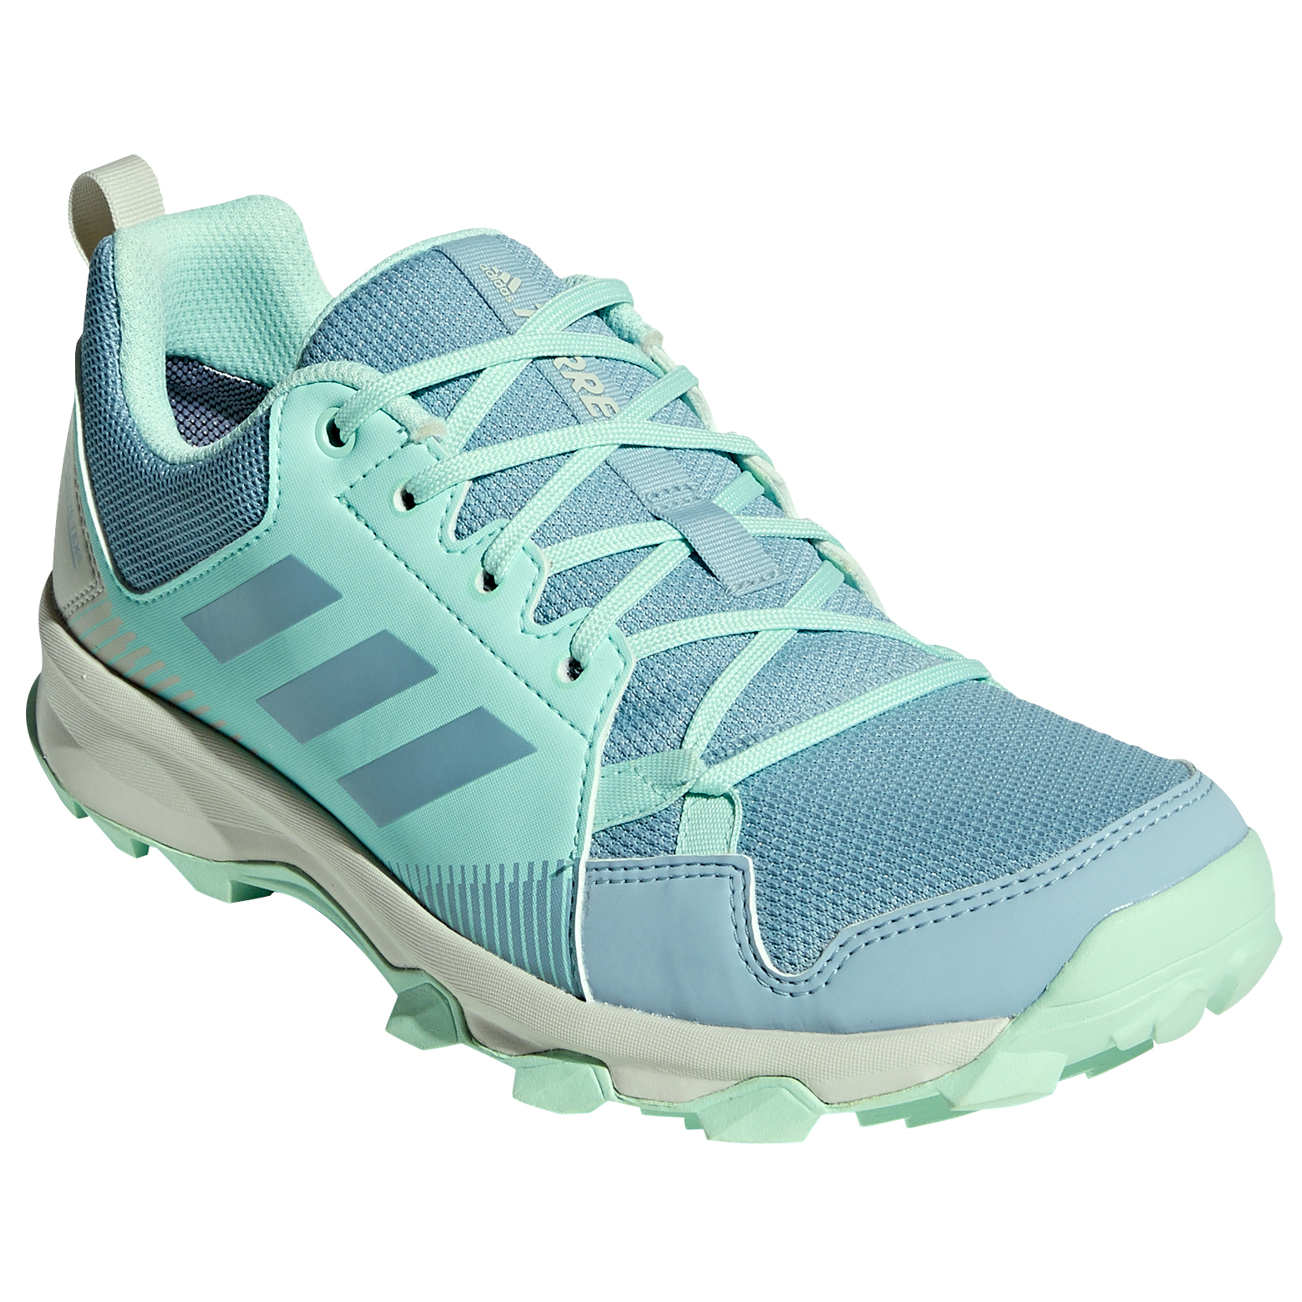 adidas - Women's Terrex Tracerocker GTX - Trailrunningschuhe - Core Black /  Carbon / Ash Green | 4 (UK)